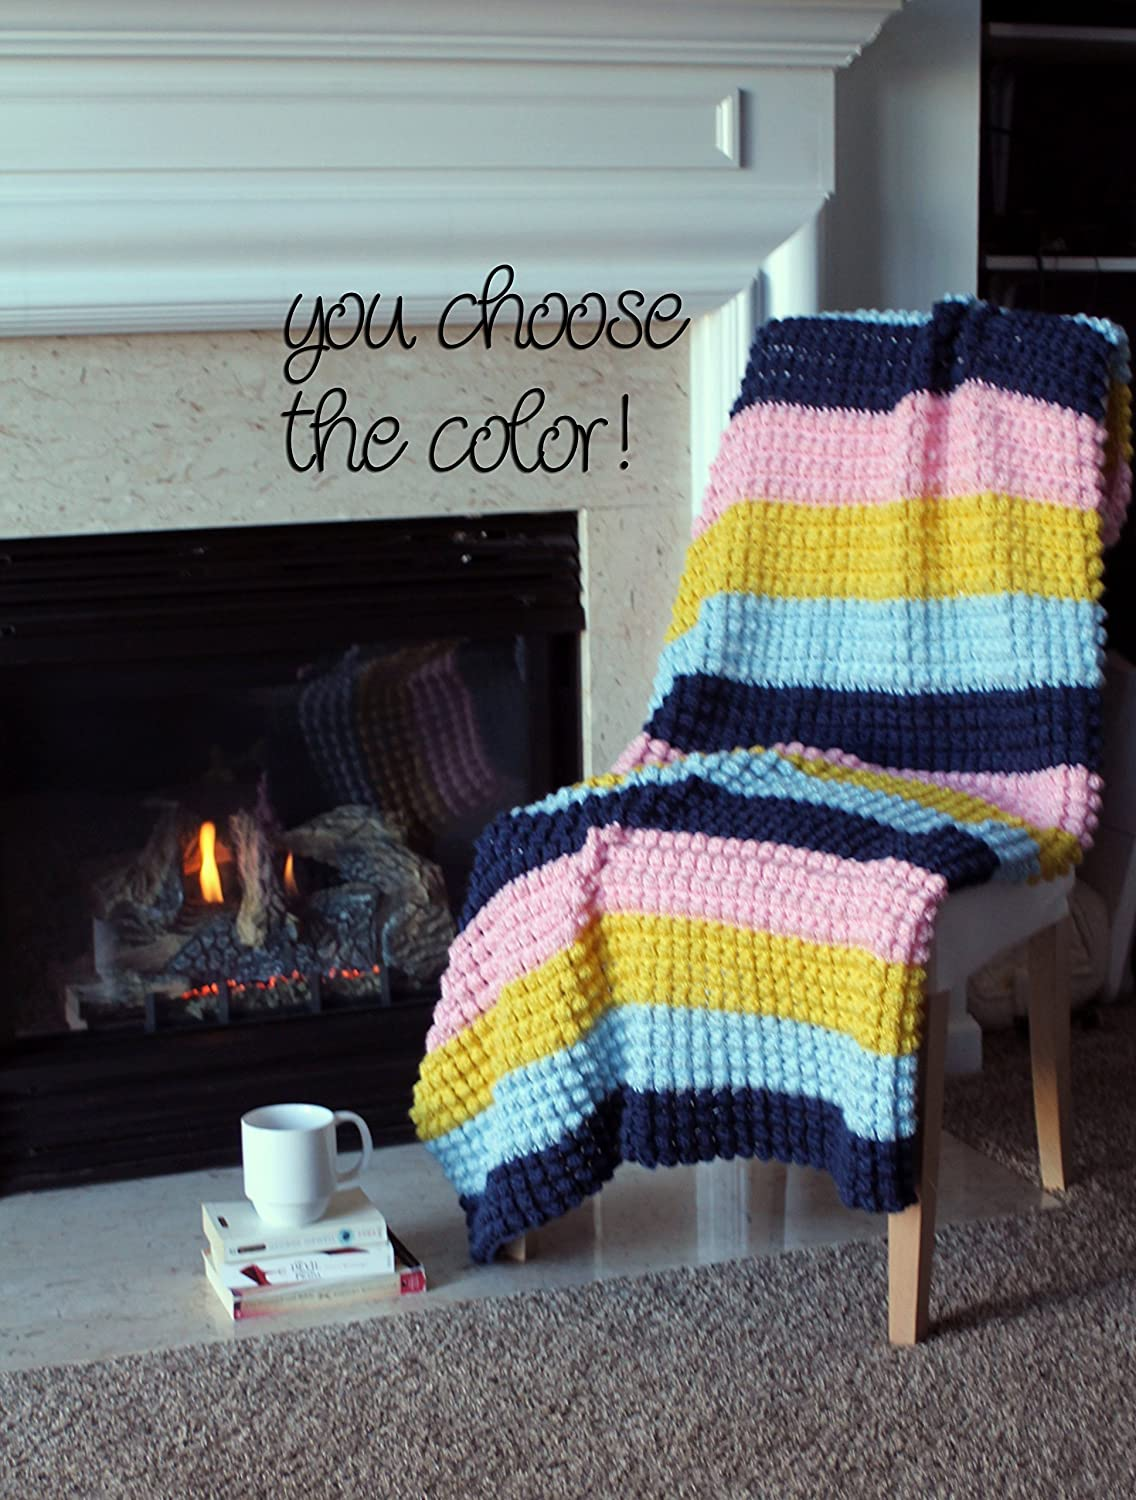 Image of Bobble Popcorn Afghan Throw Blanket Crochet - Striped Dark Blue, Light Blue, Yellow, Pink - Made To Order